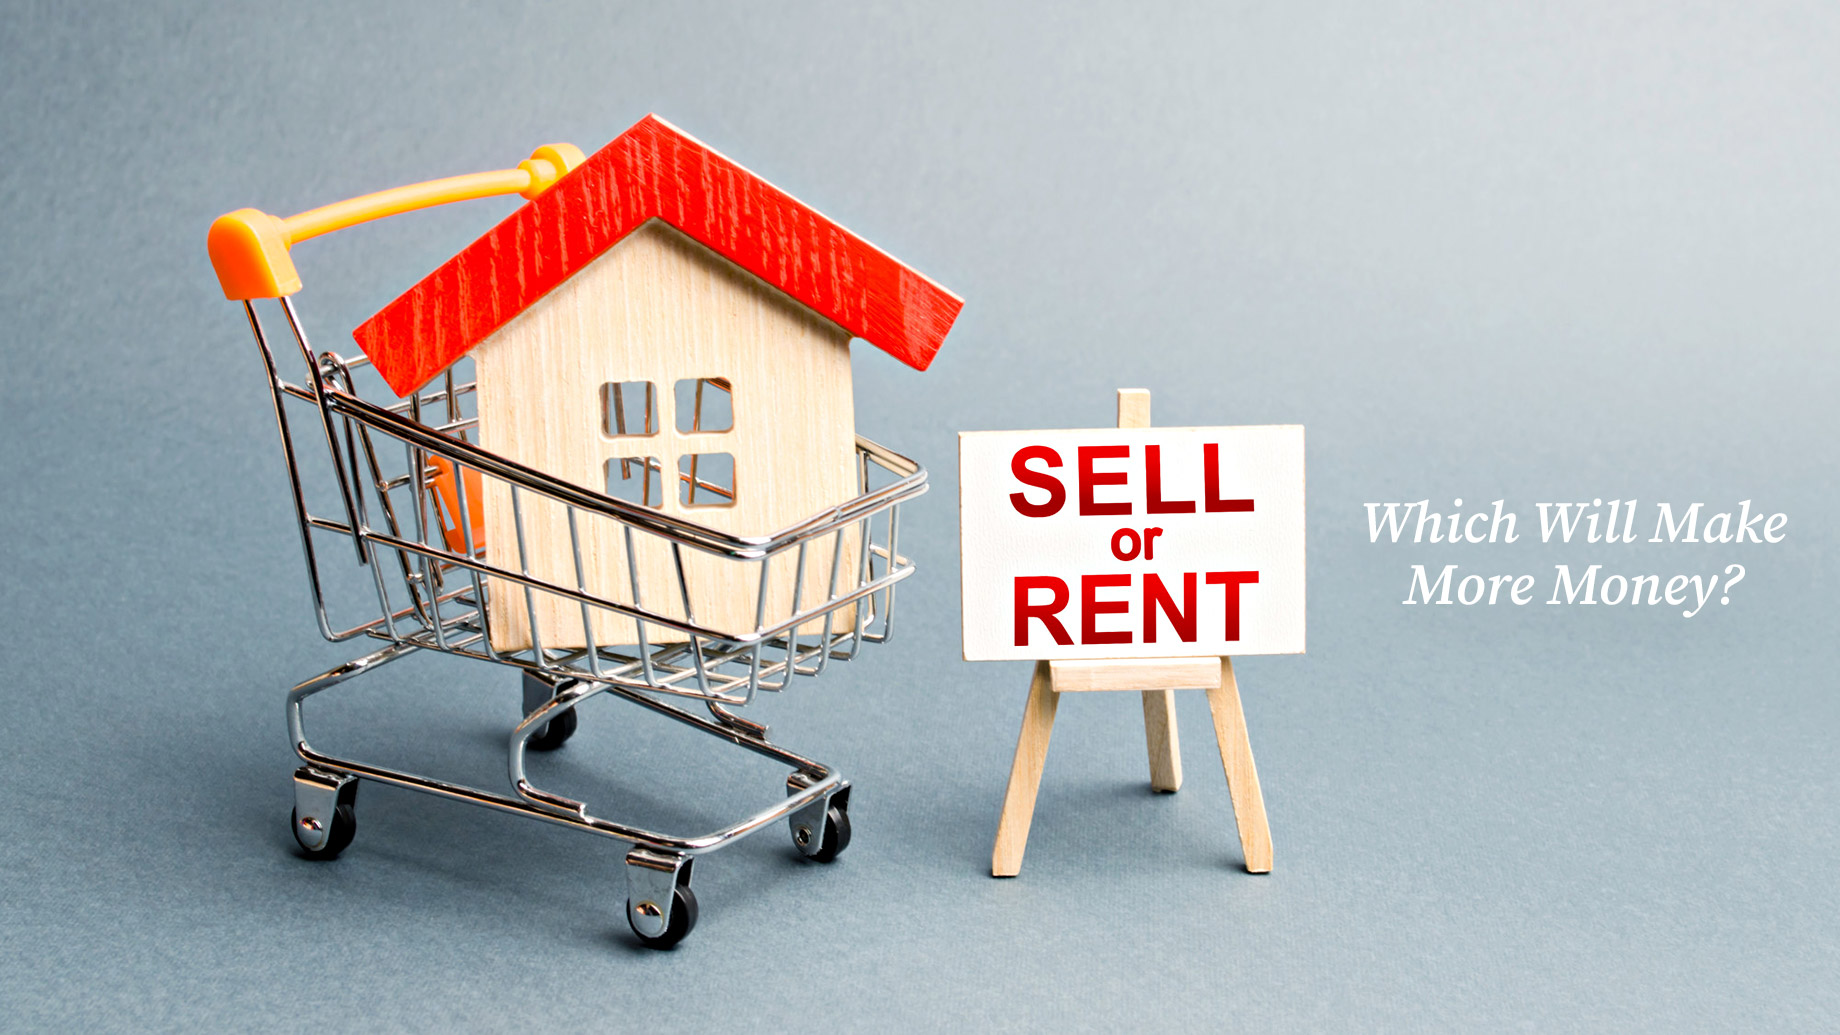 Home Renting vs. Selling - Which Will Make More Money?